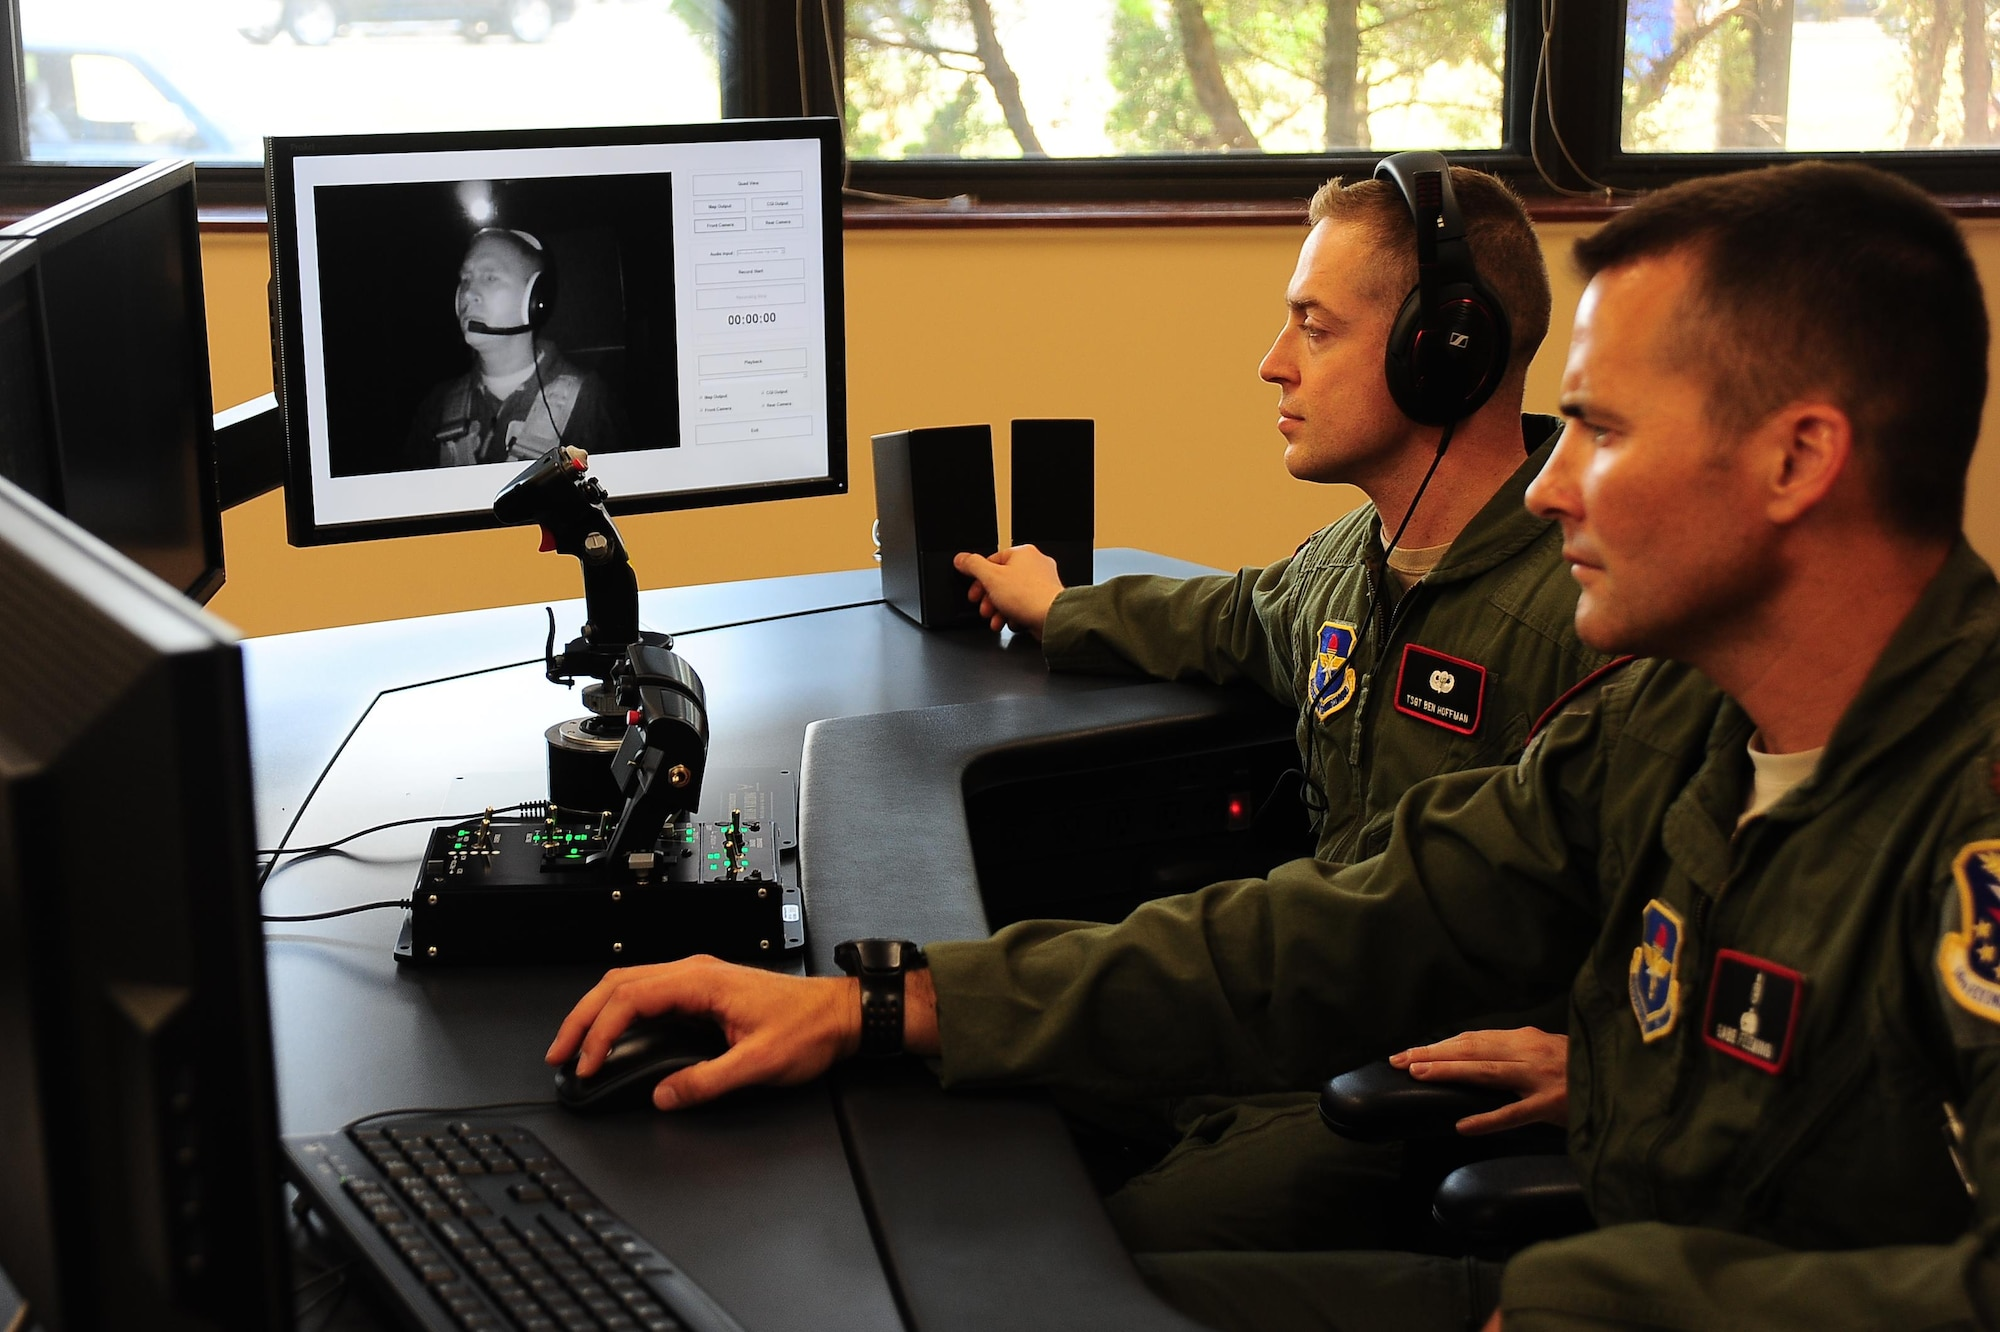 Tech. Sgt. Benjamin Hoffman and Maj. Michael Fleming monitor Col. James Fisher on the video feed from the cockpit of the new spatial disorientation simulator Aug. 5, 2015, at Columbus Air Force Base, Miss. Hoffman and Fleming directed Fisher through various sensations of roll, pitch and yaw to induce spatial disorientation. Hoffman is the 14th Medical Group Aerospace and Operational Physiology Flight chief, Fleming is the 14th MDG AOP Flight commander and Fisher is the14th Flying Training Wing vice commander. (U.S. Air Force photo/Airman 1st Class John Day)